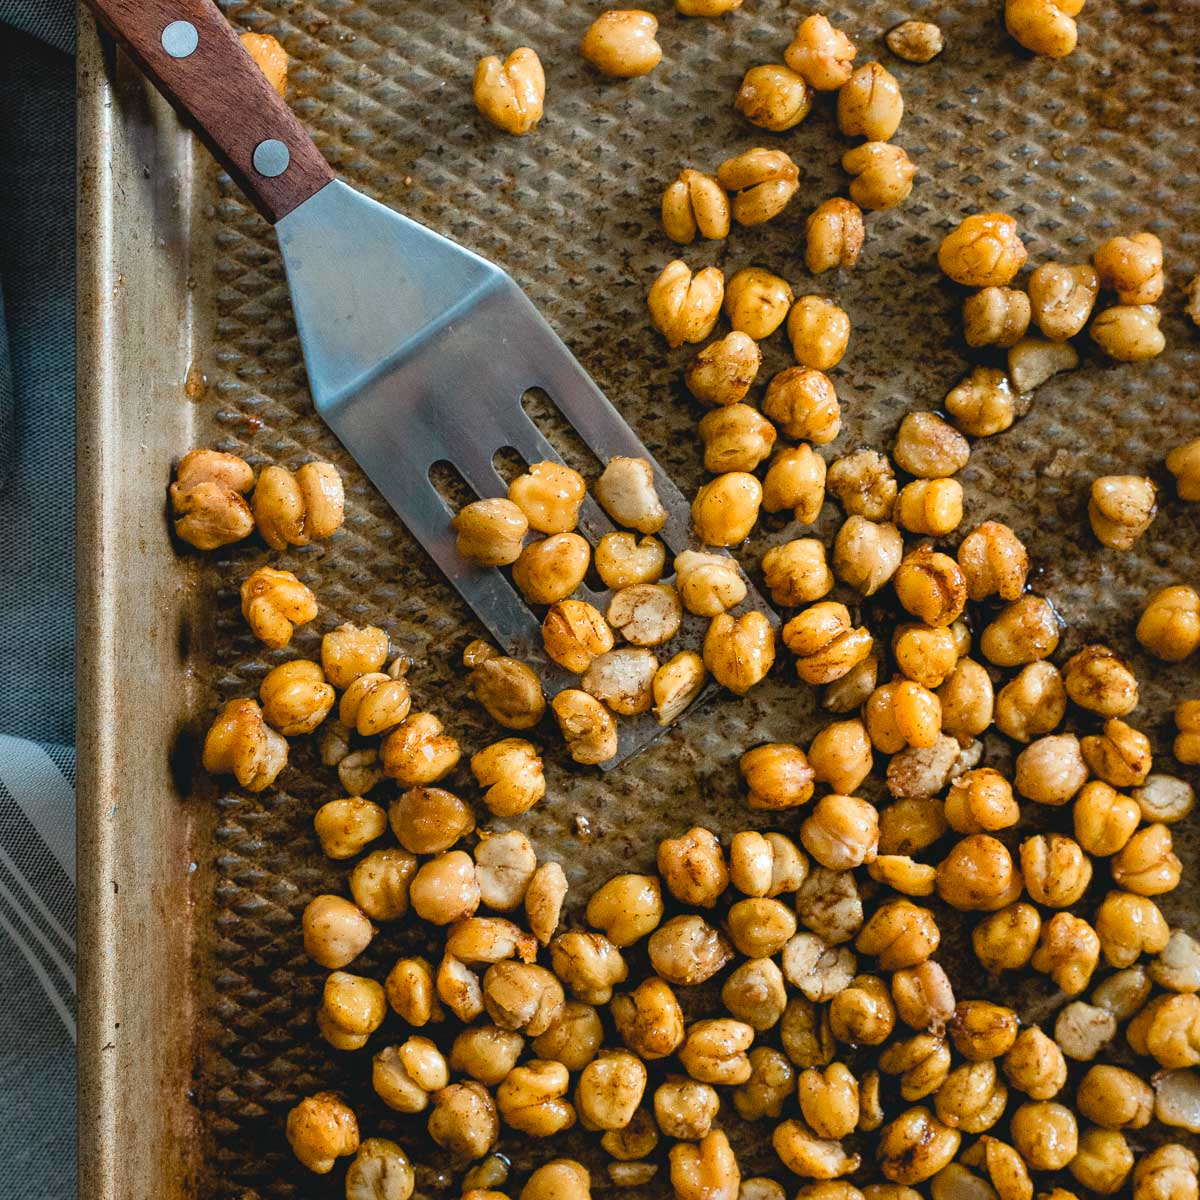 Follow this trick to get crispy roasted chickpeas every time, these cinnamon toast crunch chickpeas are the perfect healthy, sweet snack.